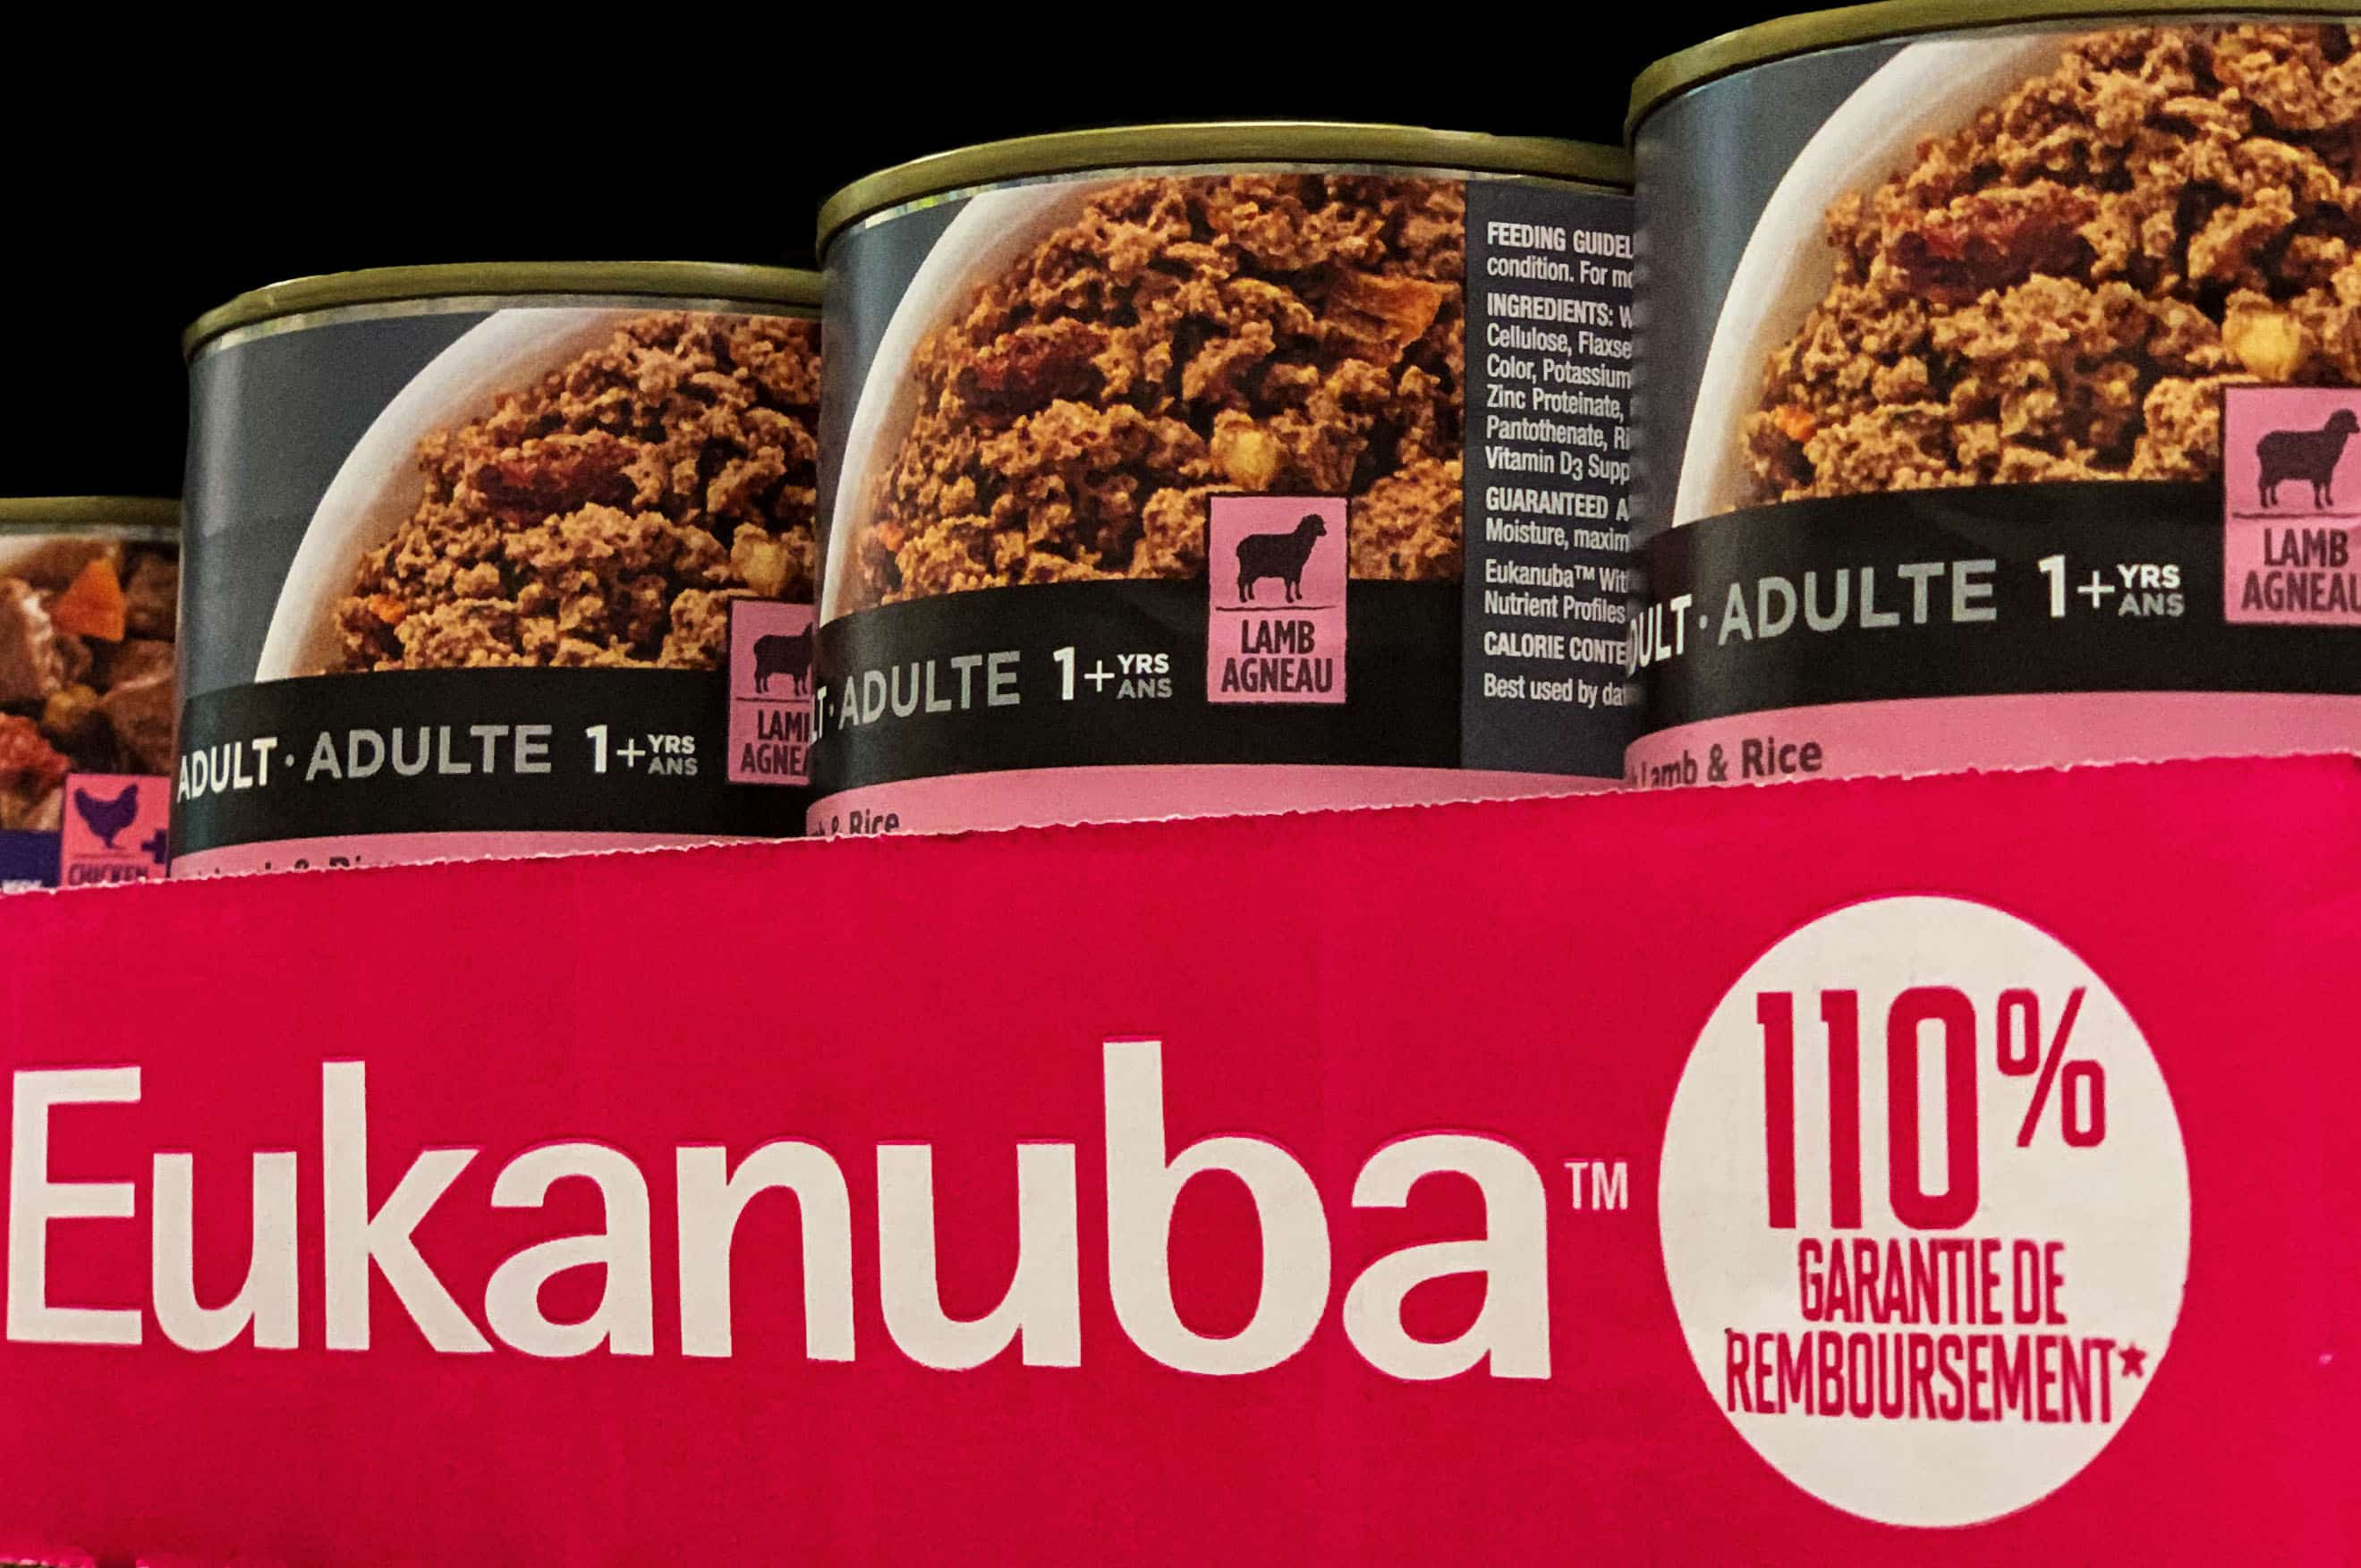 Eukaneba canned food in pink box